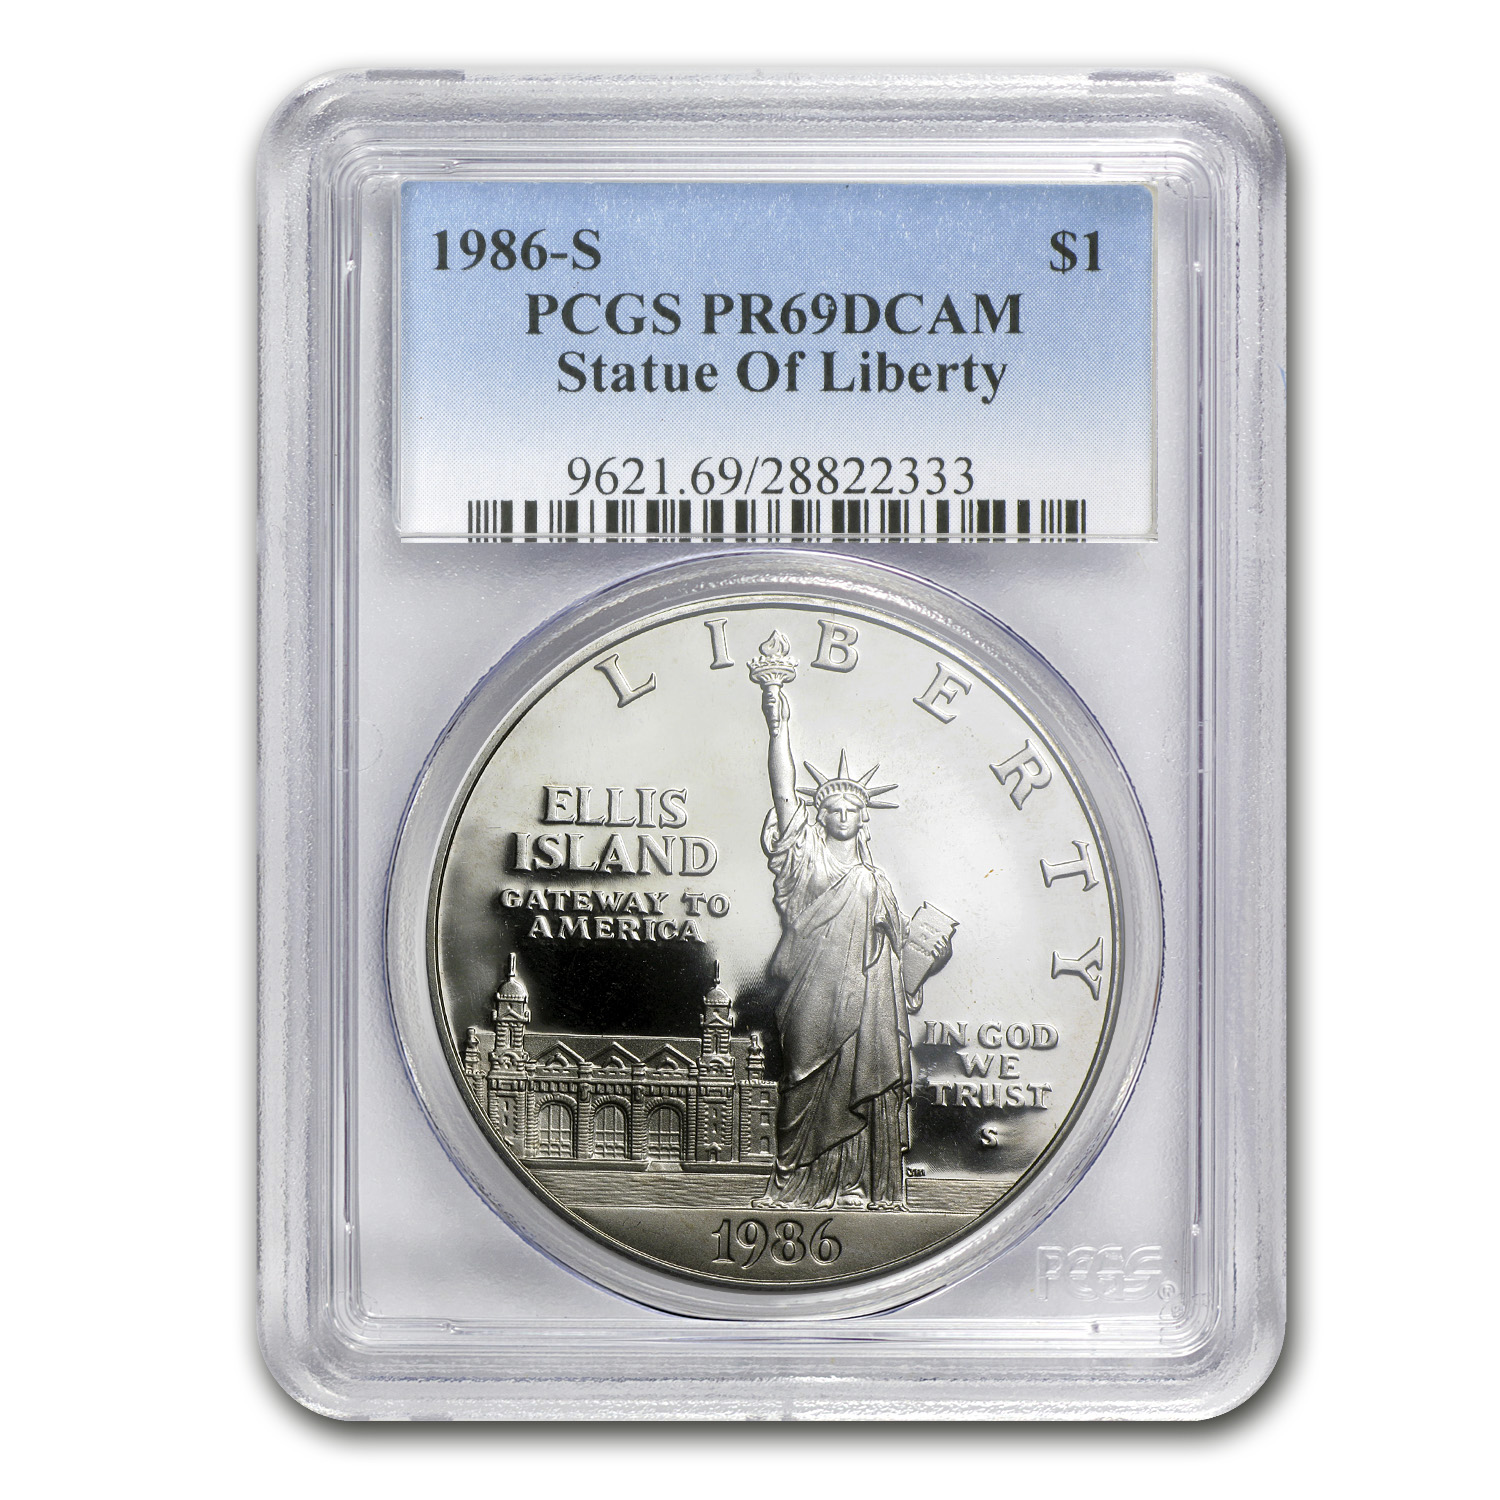 1986-S Statue of Liberty $1 Silver Commem PR-69 PCGS